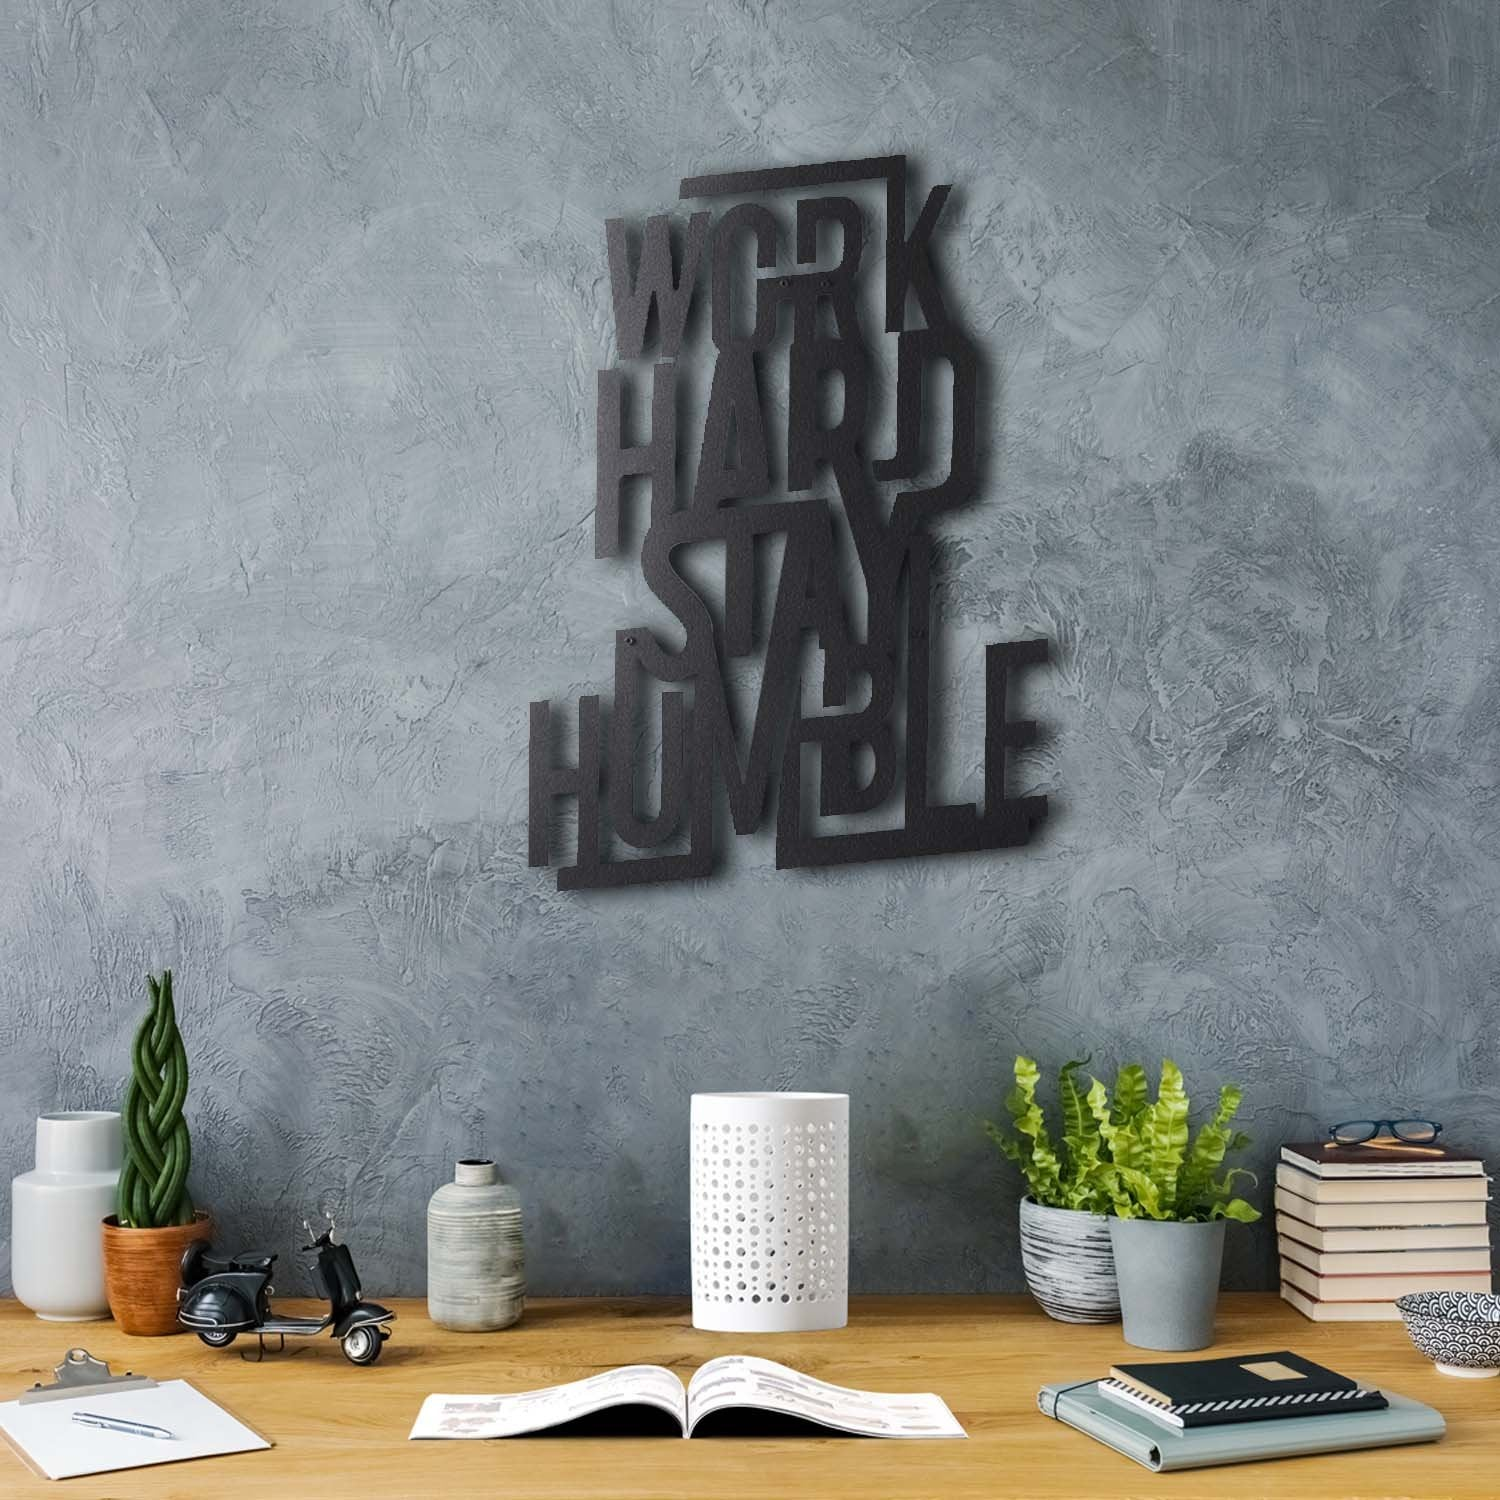 Bystag metal dekoratif duvar aksesuarı work hard stay humble- Bystag metal wall art-wall art-wall decor-metal wall decor-work hard stay humble